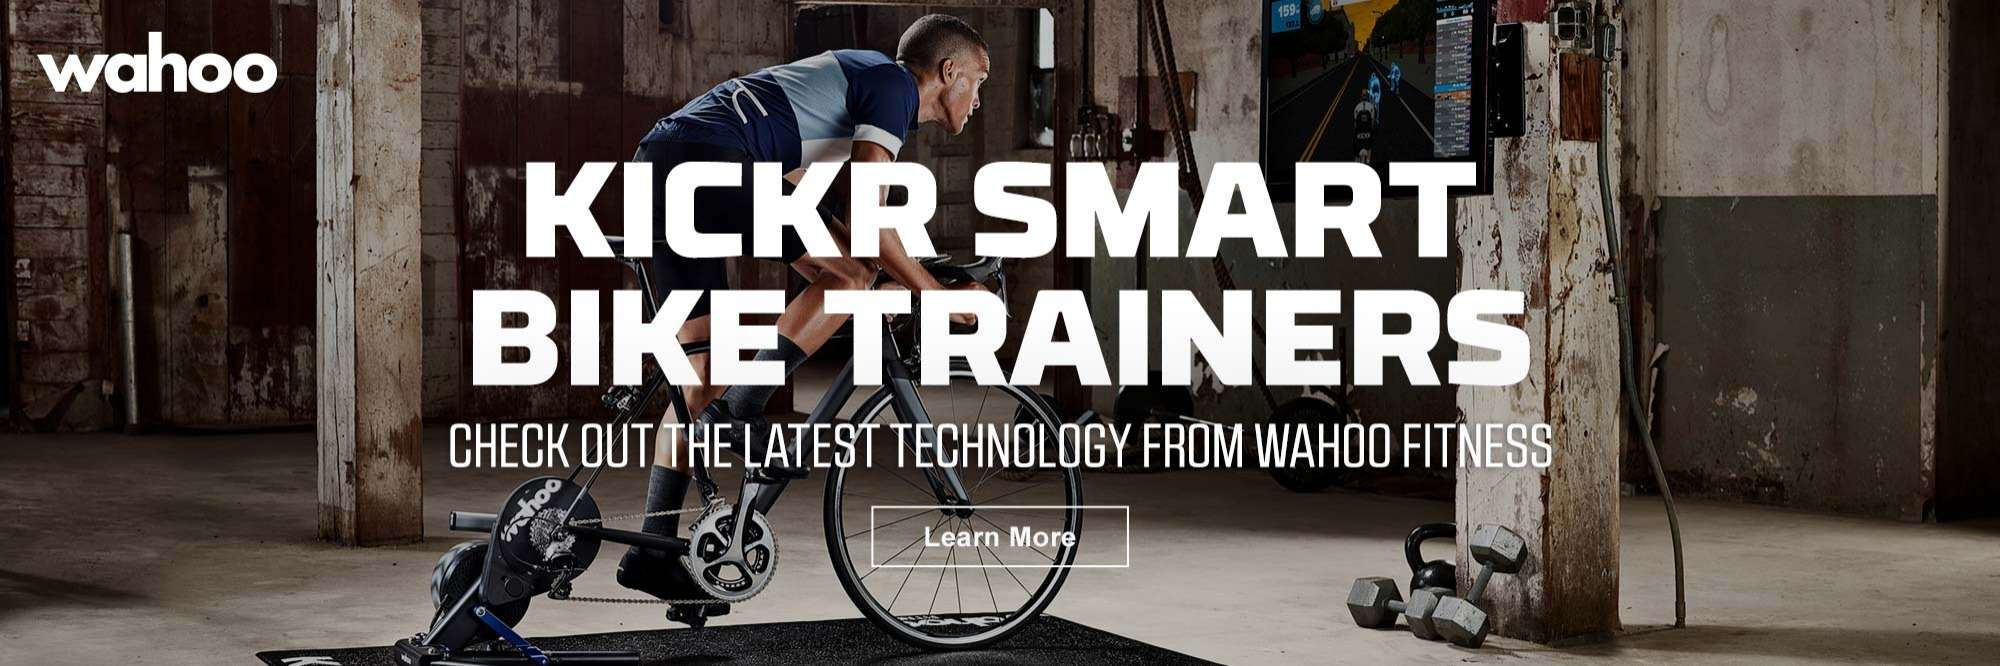 Wahoo Kickr Smart Bike Trainers